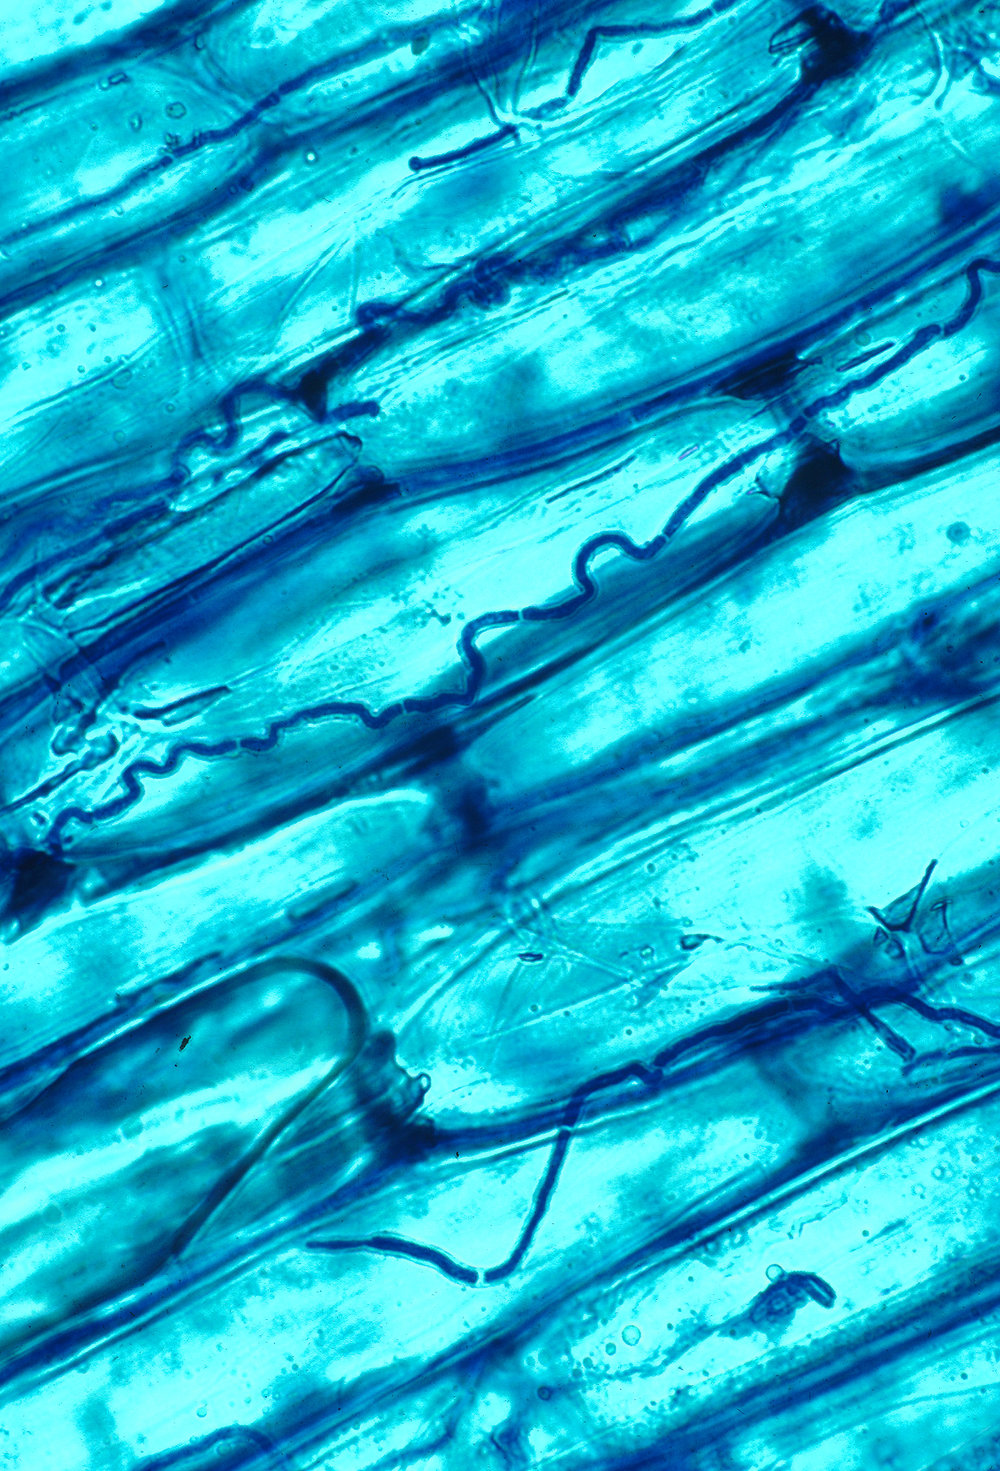 Endophytic fungi living in the cells of a grass leaf.